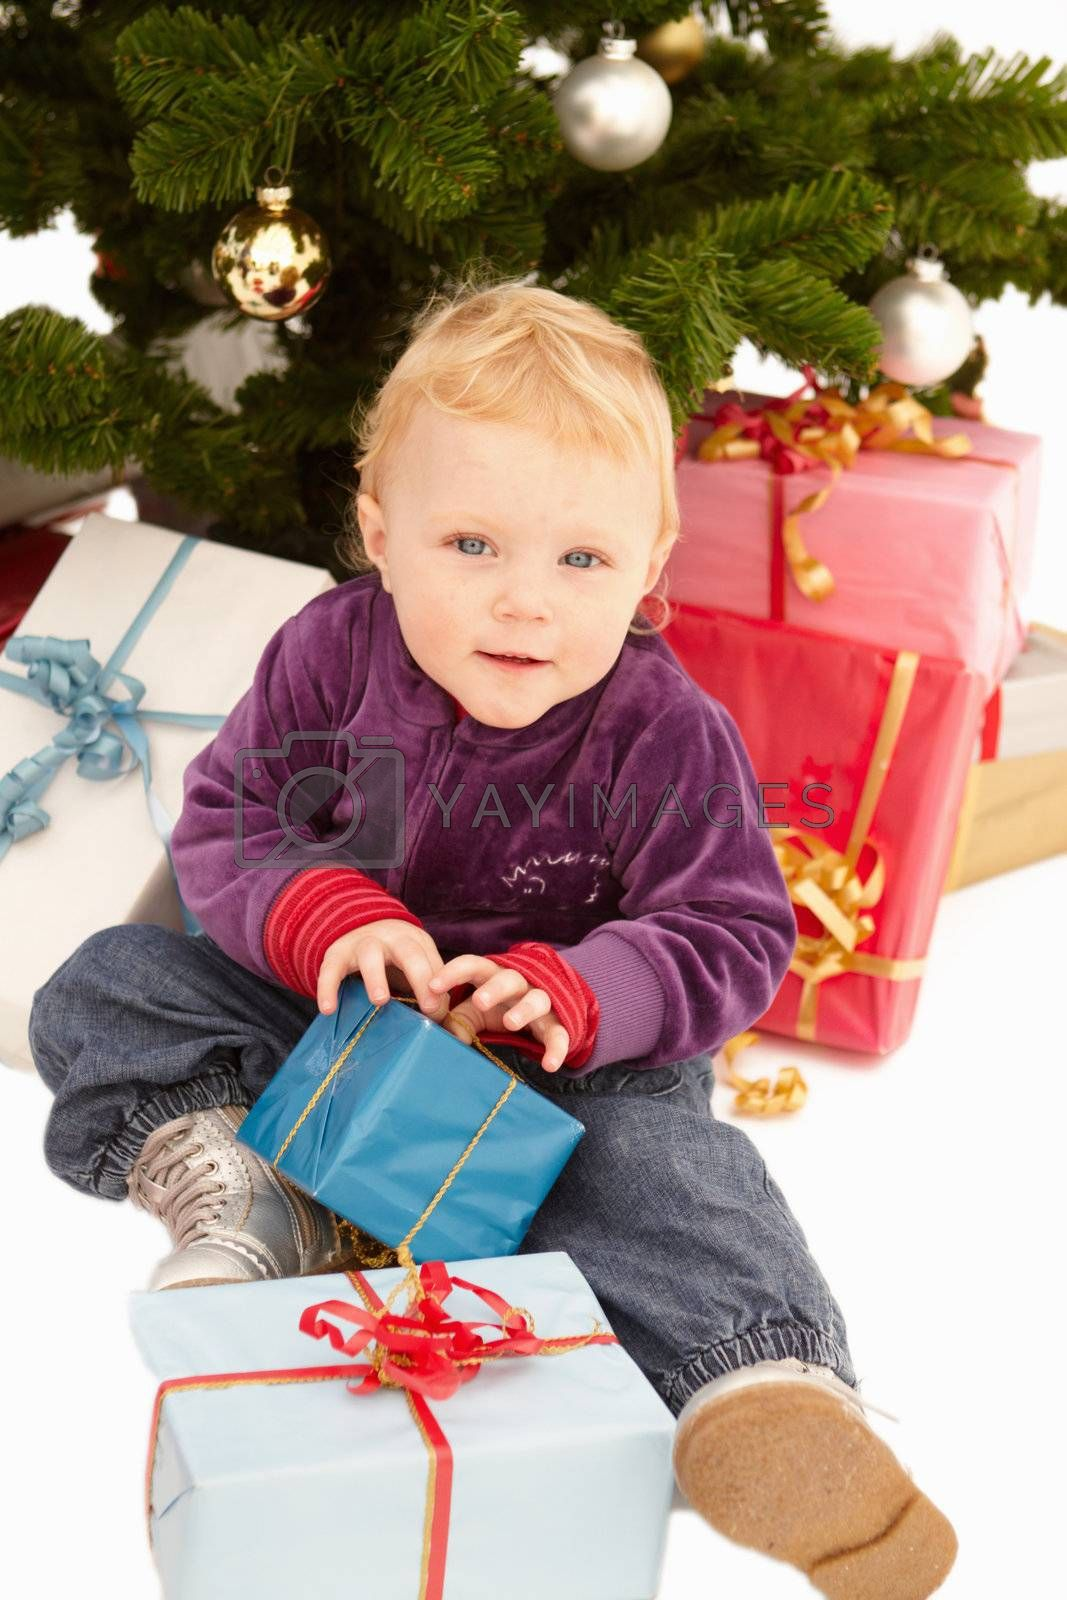 Royalty free image of Christmas - Cute child opening gifts  by FreedomImage